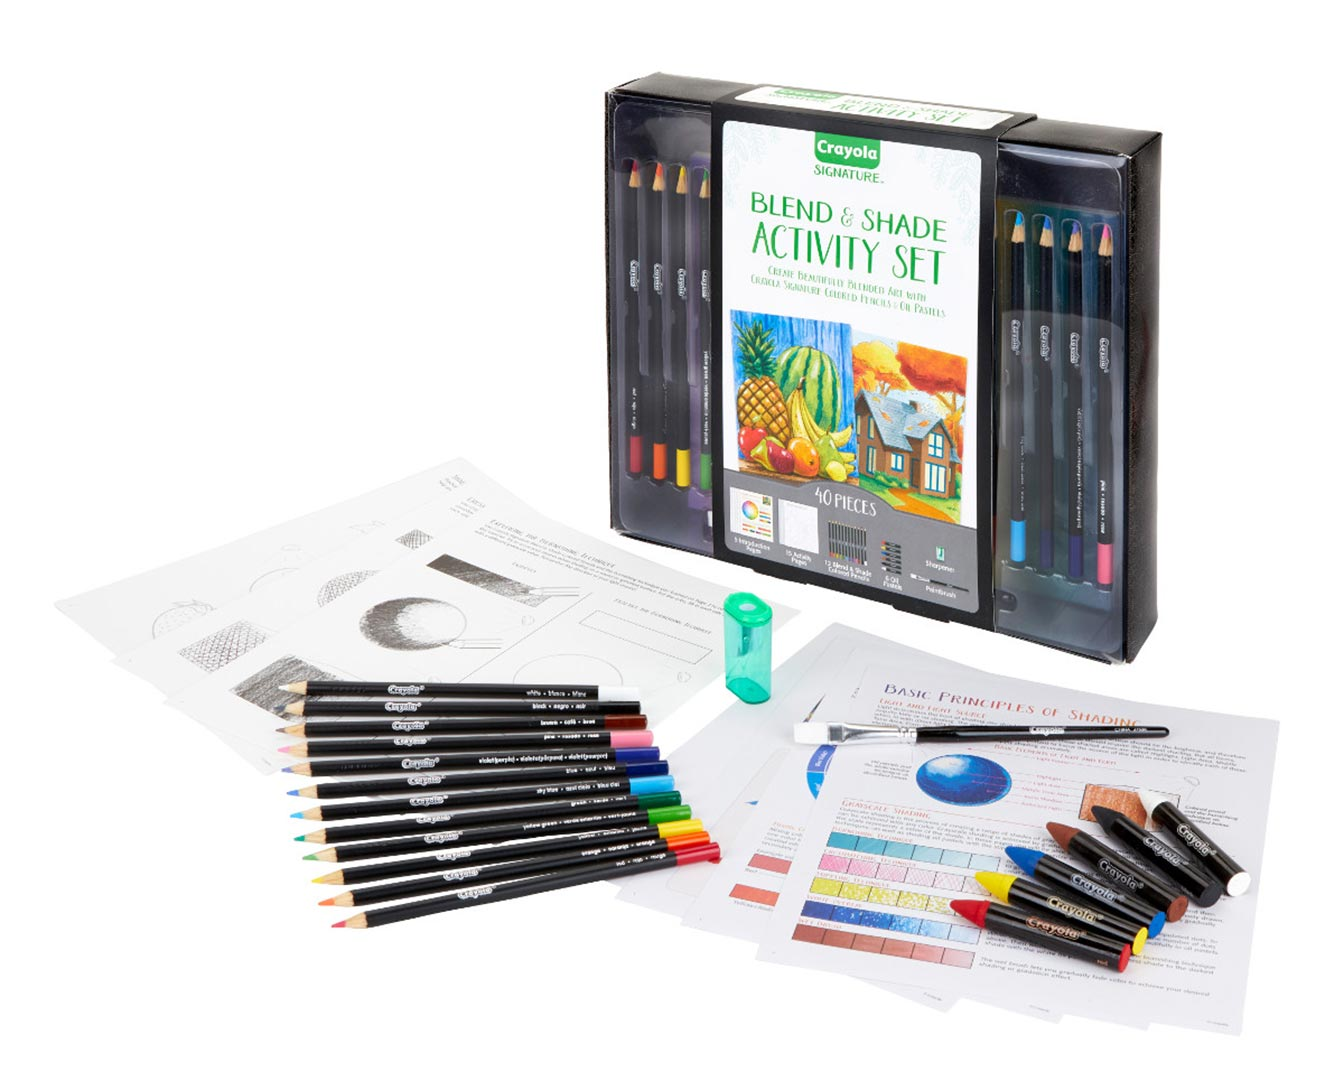 Signature Blend and Shade Activity Set